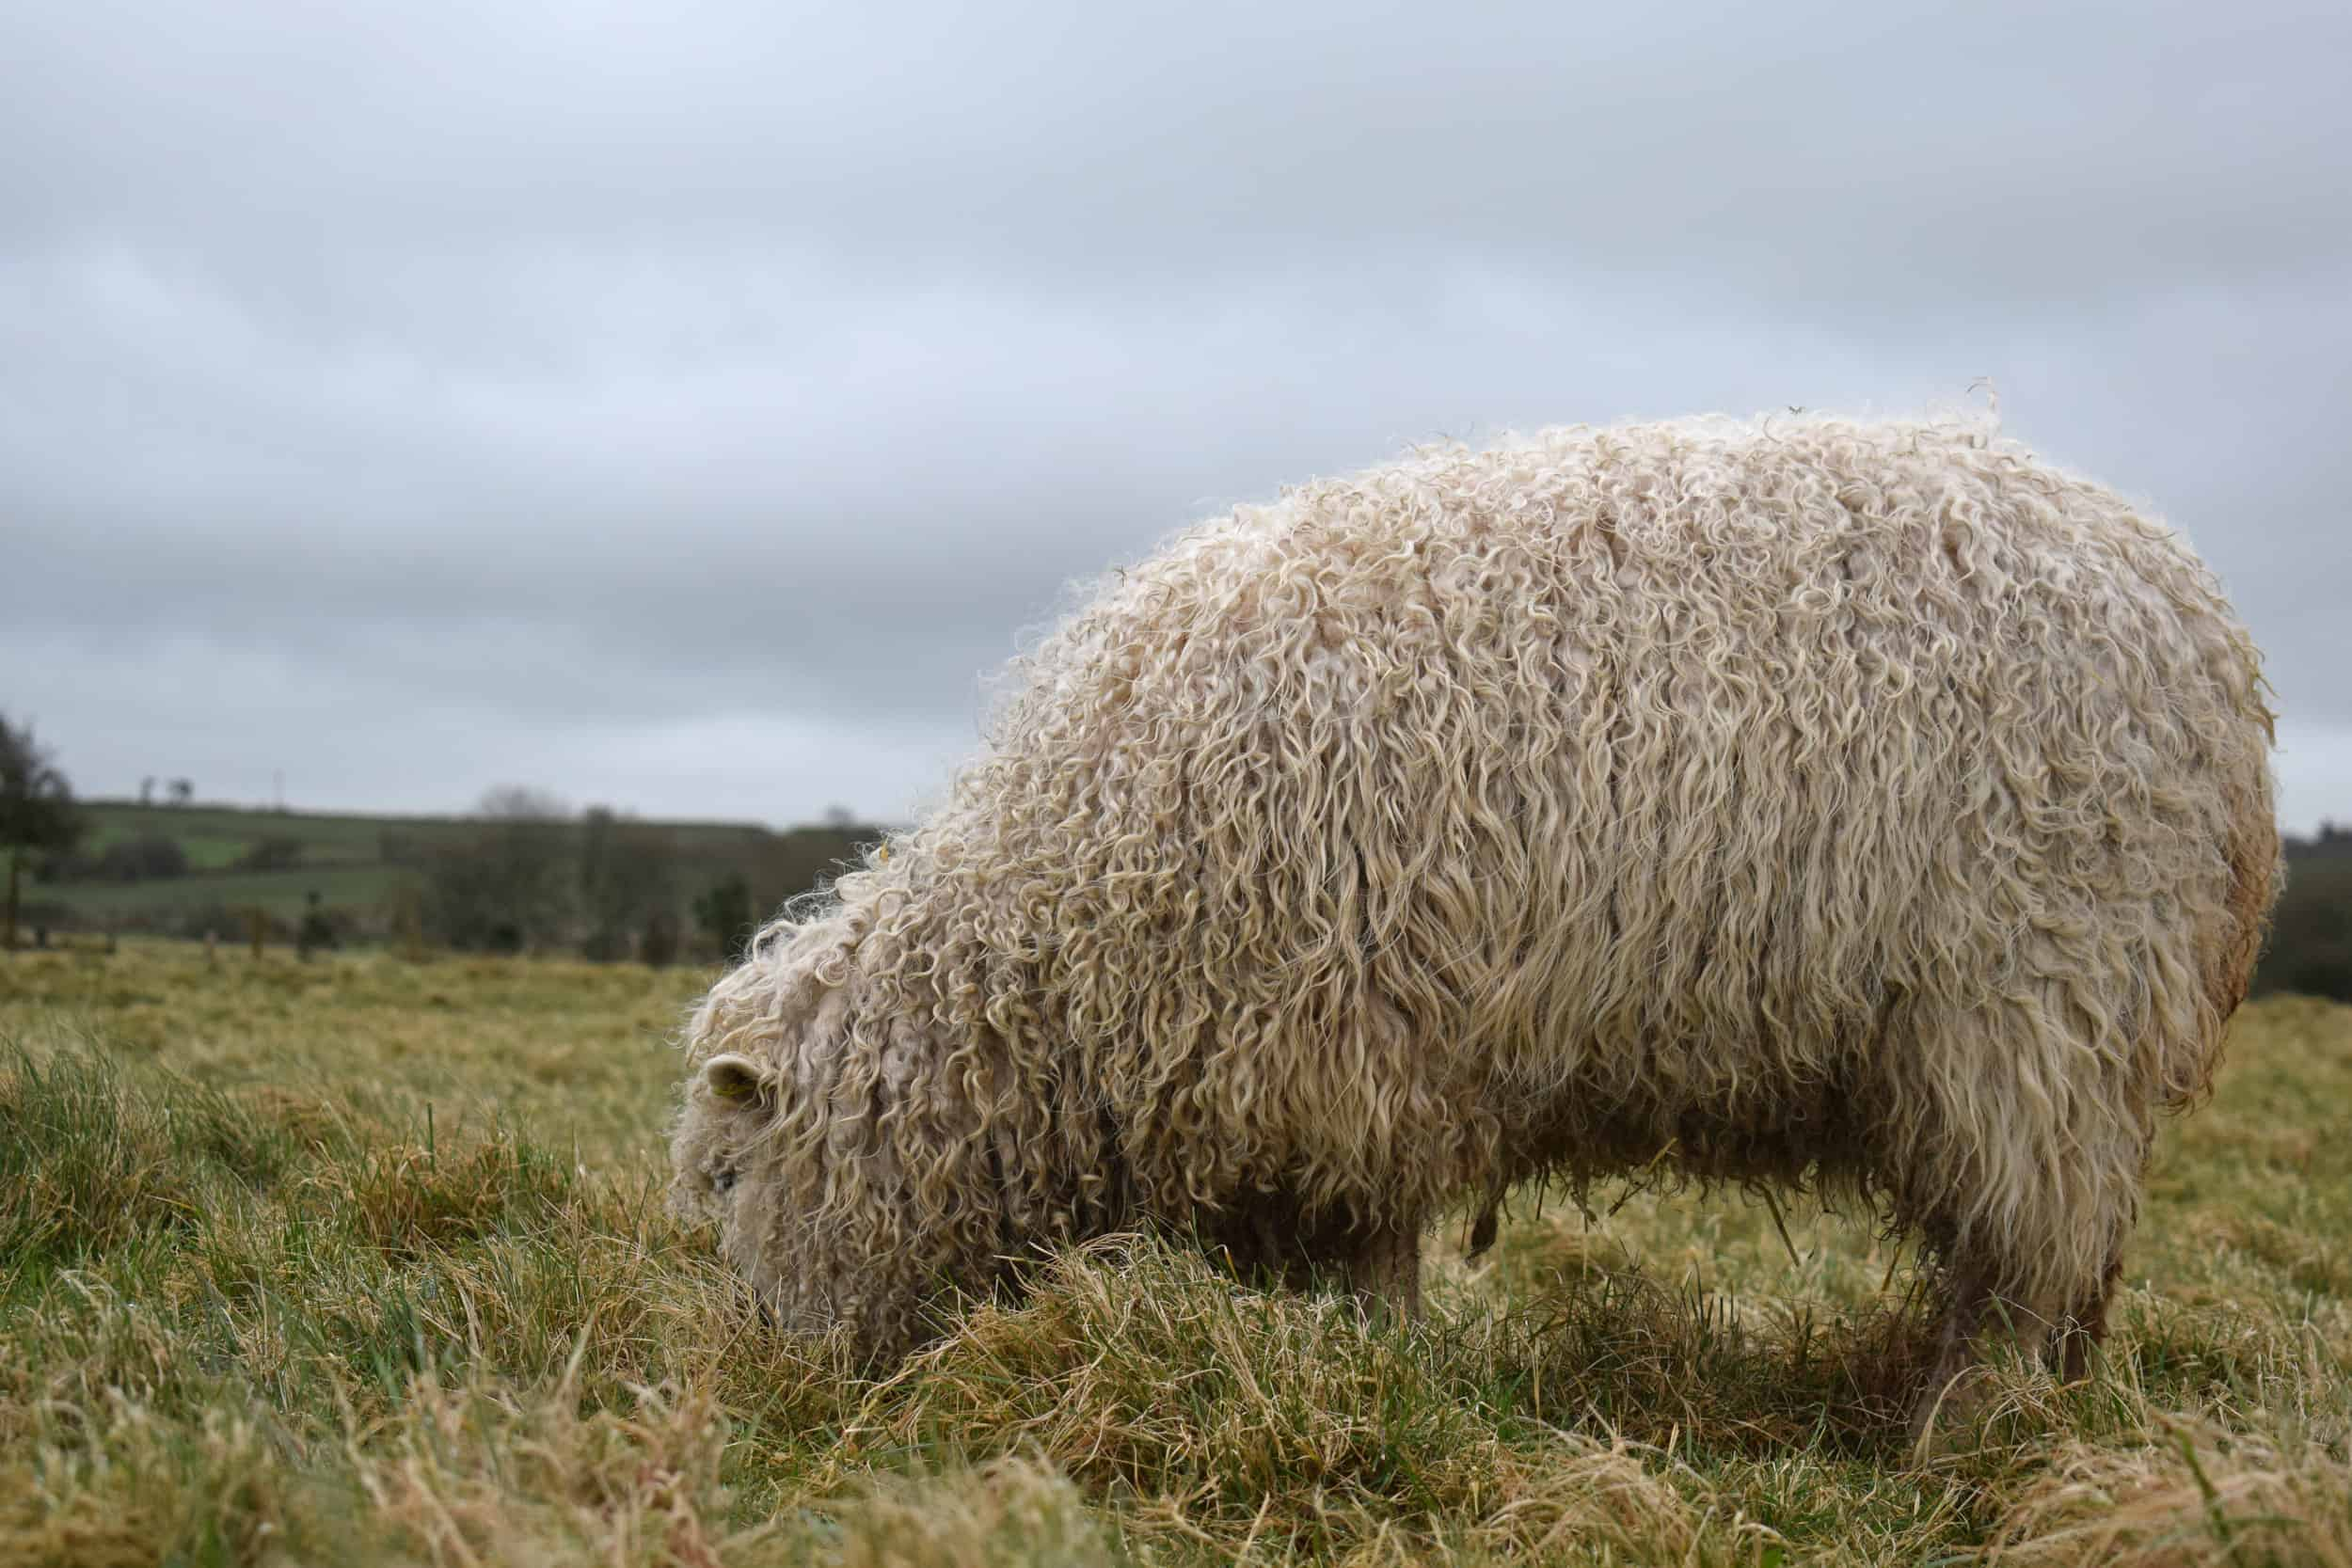 Porridge gotland cross greyface dartmoor sheep longwool patchwork curls white wool 3